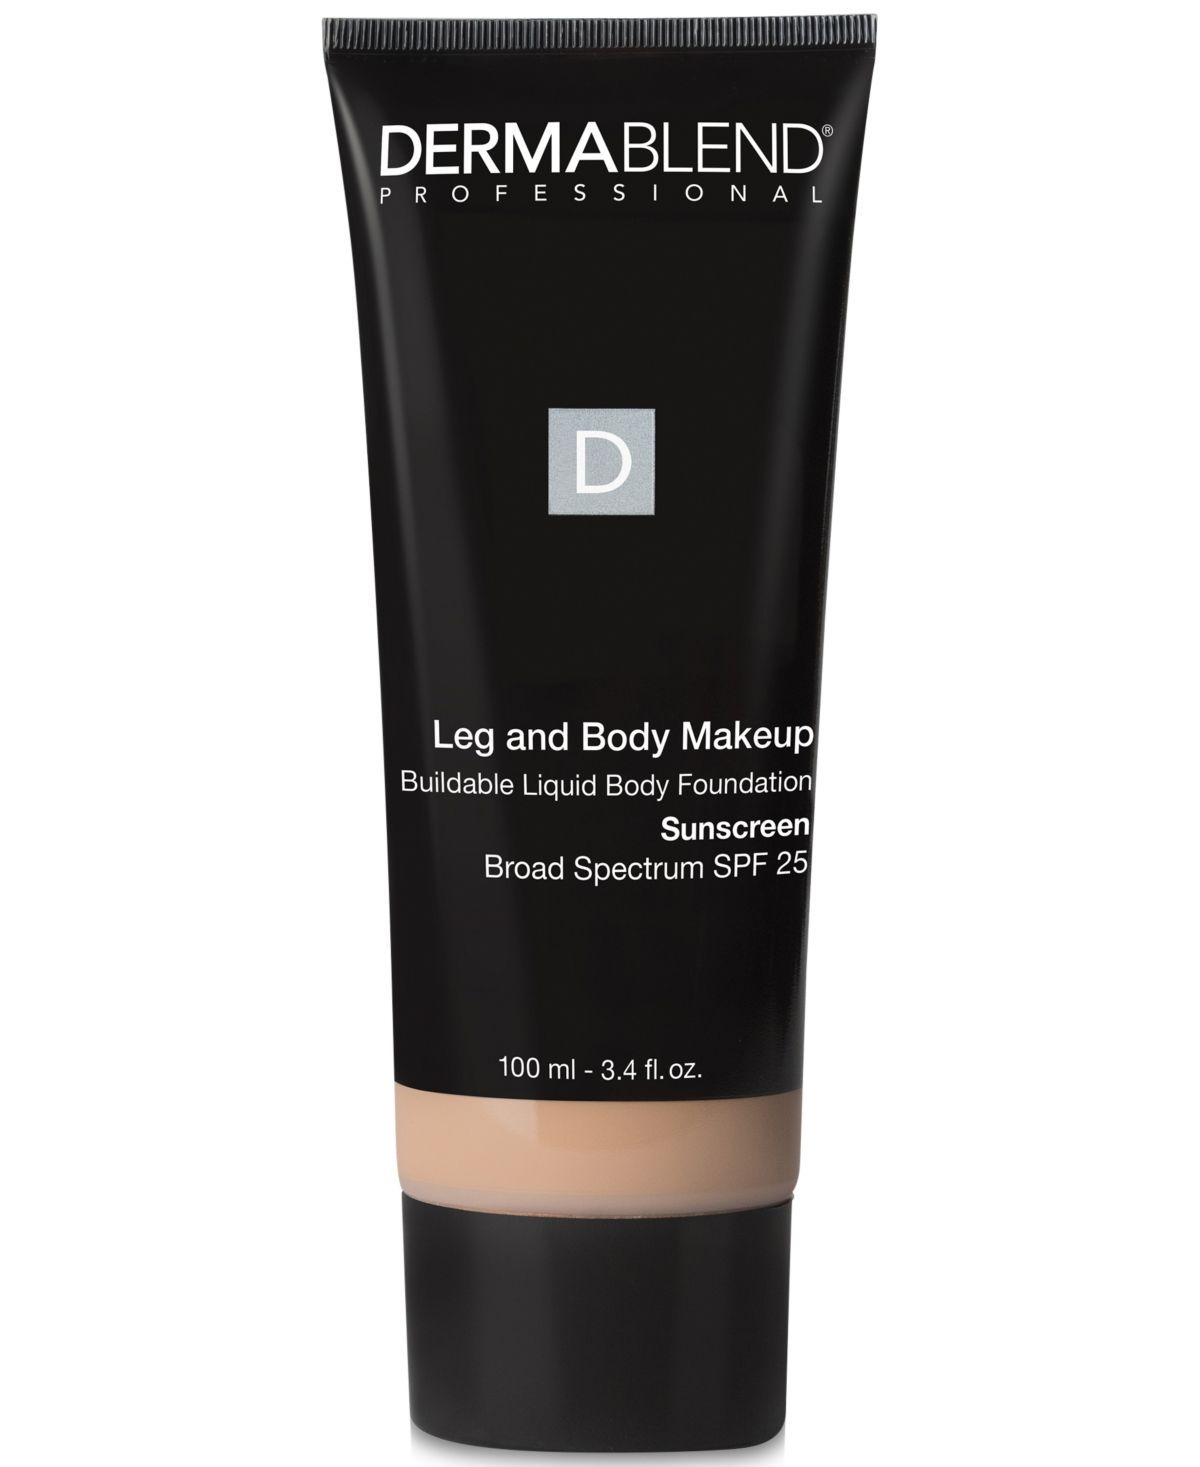 Dermablend Leg And Body Makeup 3 4 Fl Oz Fair Ivory N 1 Dermatologist Recommended Cover Body Makeup Body Foundation Dermablend